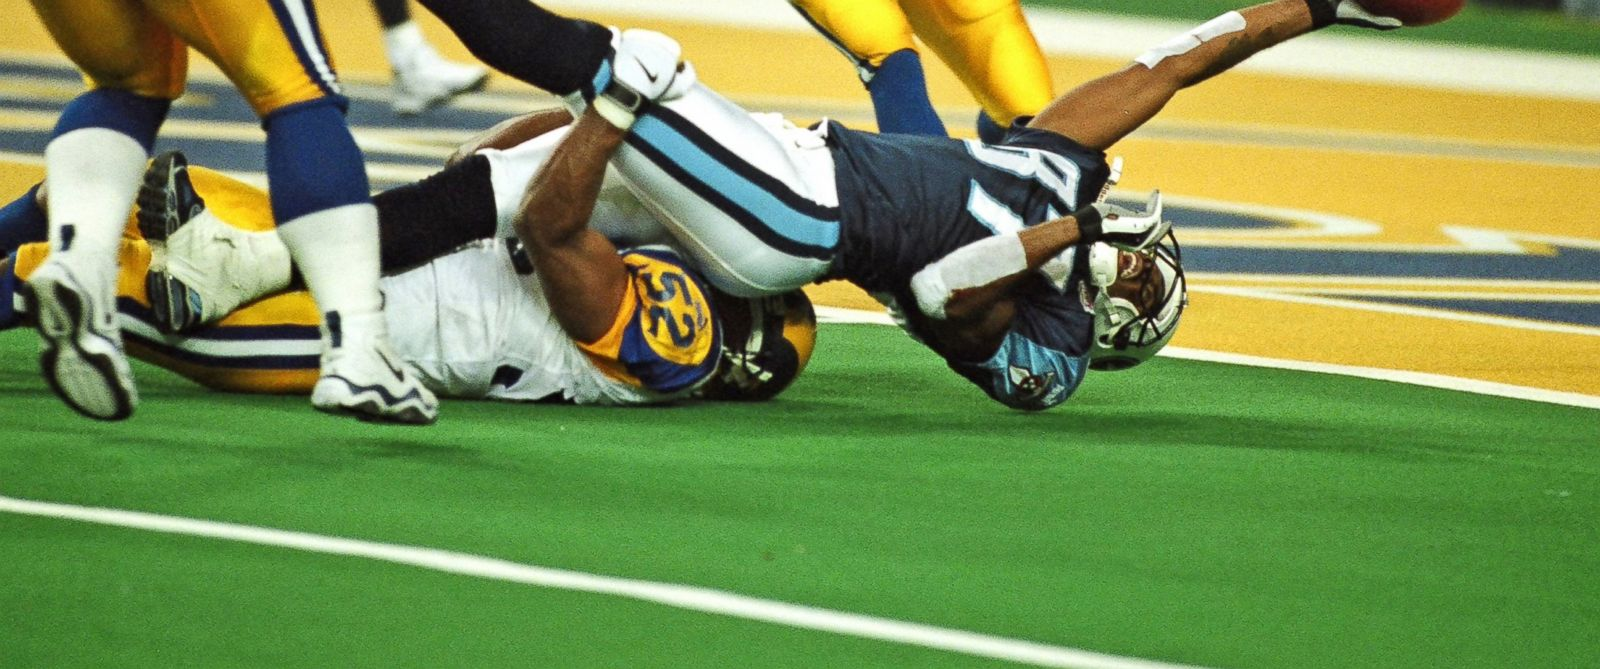 PHOTO: Tennessee Titans receiver Kevin Dyson is tackled just short of the goal line by St. Louis Rams linebacker Mike Jones on the last play of Super Bowl XXXIV at the Georgia Dome in Atlanta, GA on Jan. 30, 2000.